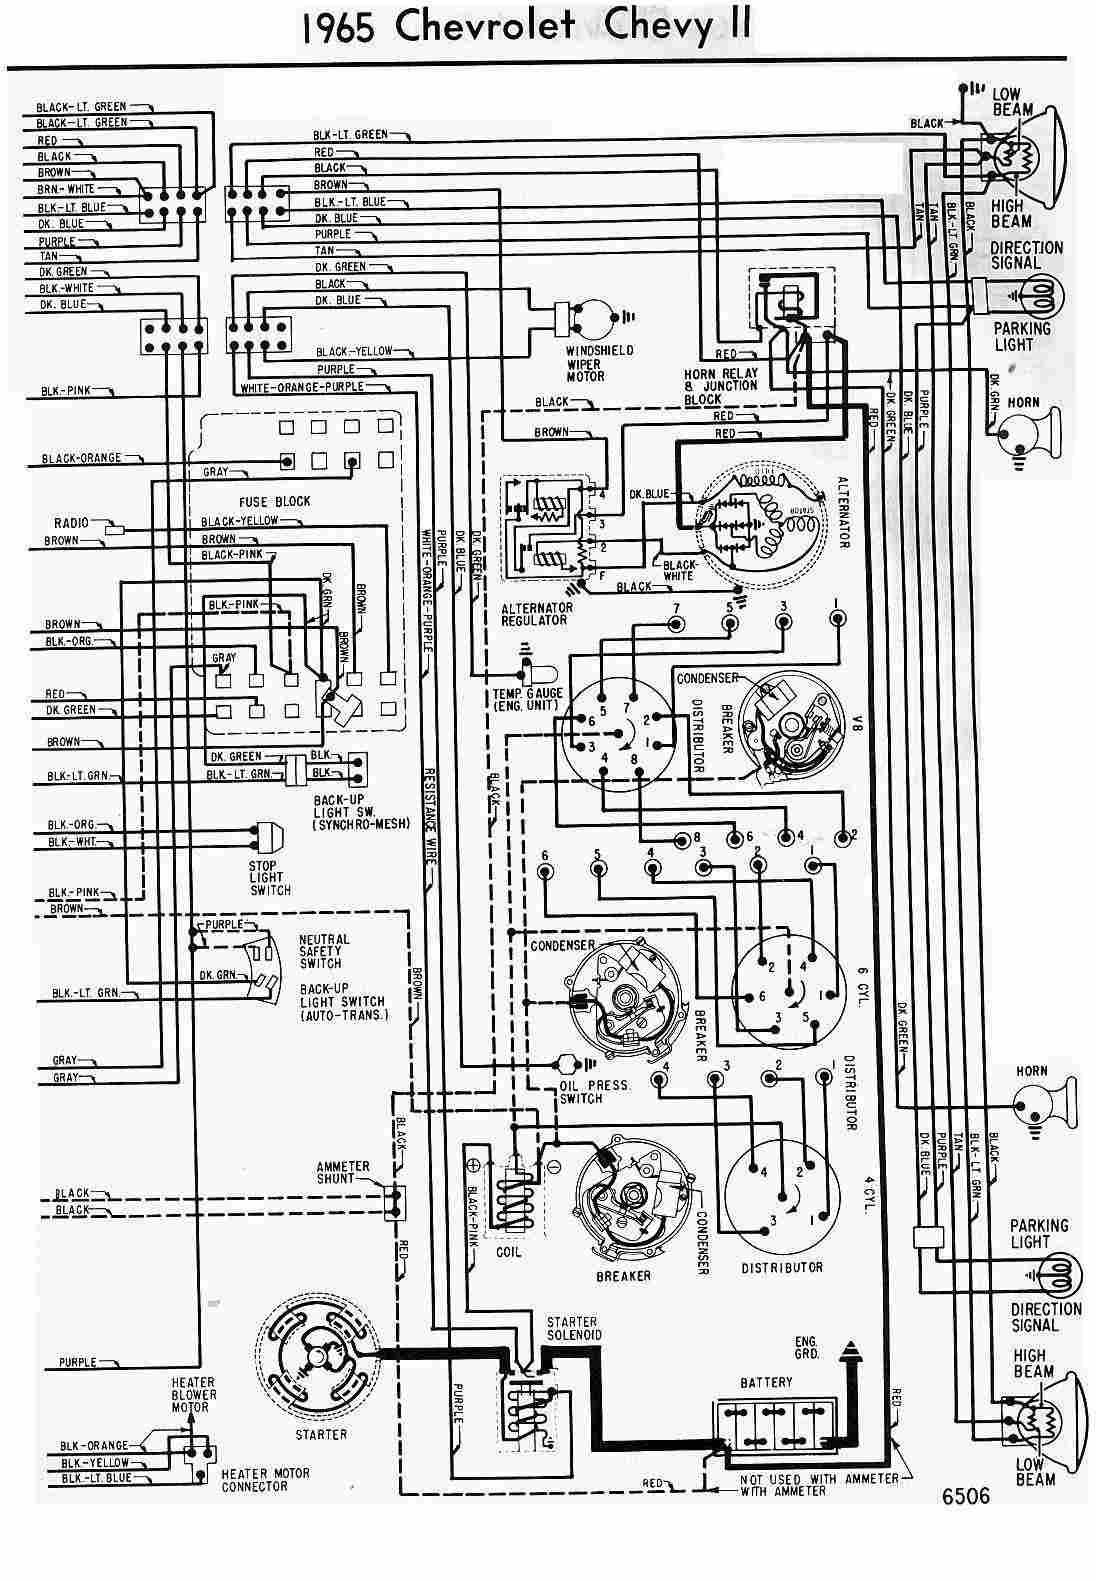 Chevrolet - Car Manuals, Wiring Diagrams PDF & Fault Codes on chevrolet repair manual, chevrolet remote control, chevrolet exhaust diagram, chevrolet fuel gauge wiring, chevrolet vacuum diagrams, chevrolet owner's manual, chevrolet battery diagram, chevrolet forum, chevrolet ignition wiring, chevrolet midnight edition, chevrolet gassers, chevrolet ignition switch, chevrolet thermostat replacement, chevrolet schematics, chevrolet black reaper, chevrolet babes, chevrolet engine diagram, chevrolet transmission diagram, chevrolet key fob programming, chevrolet cooling system,